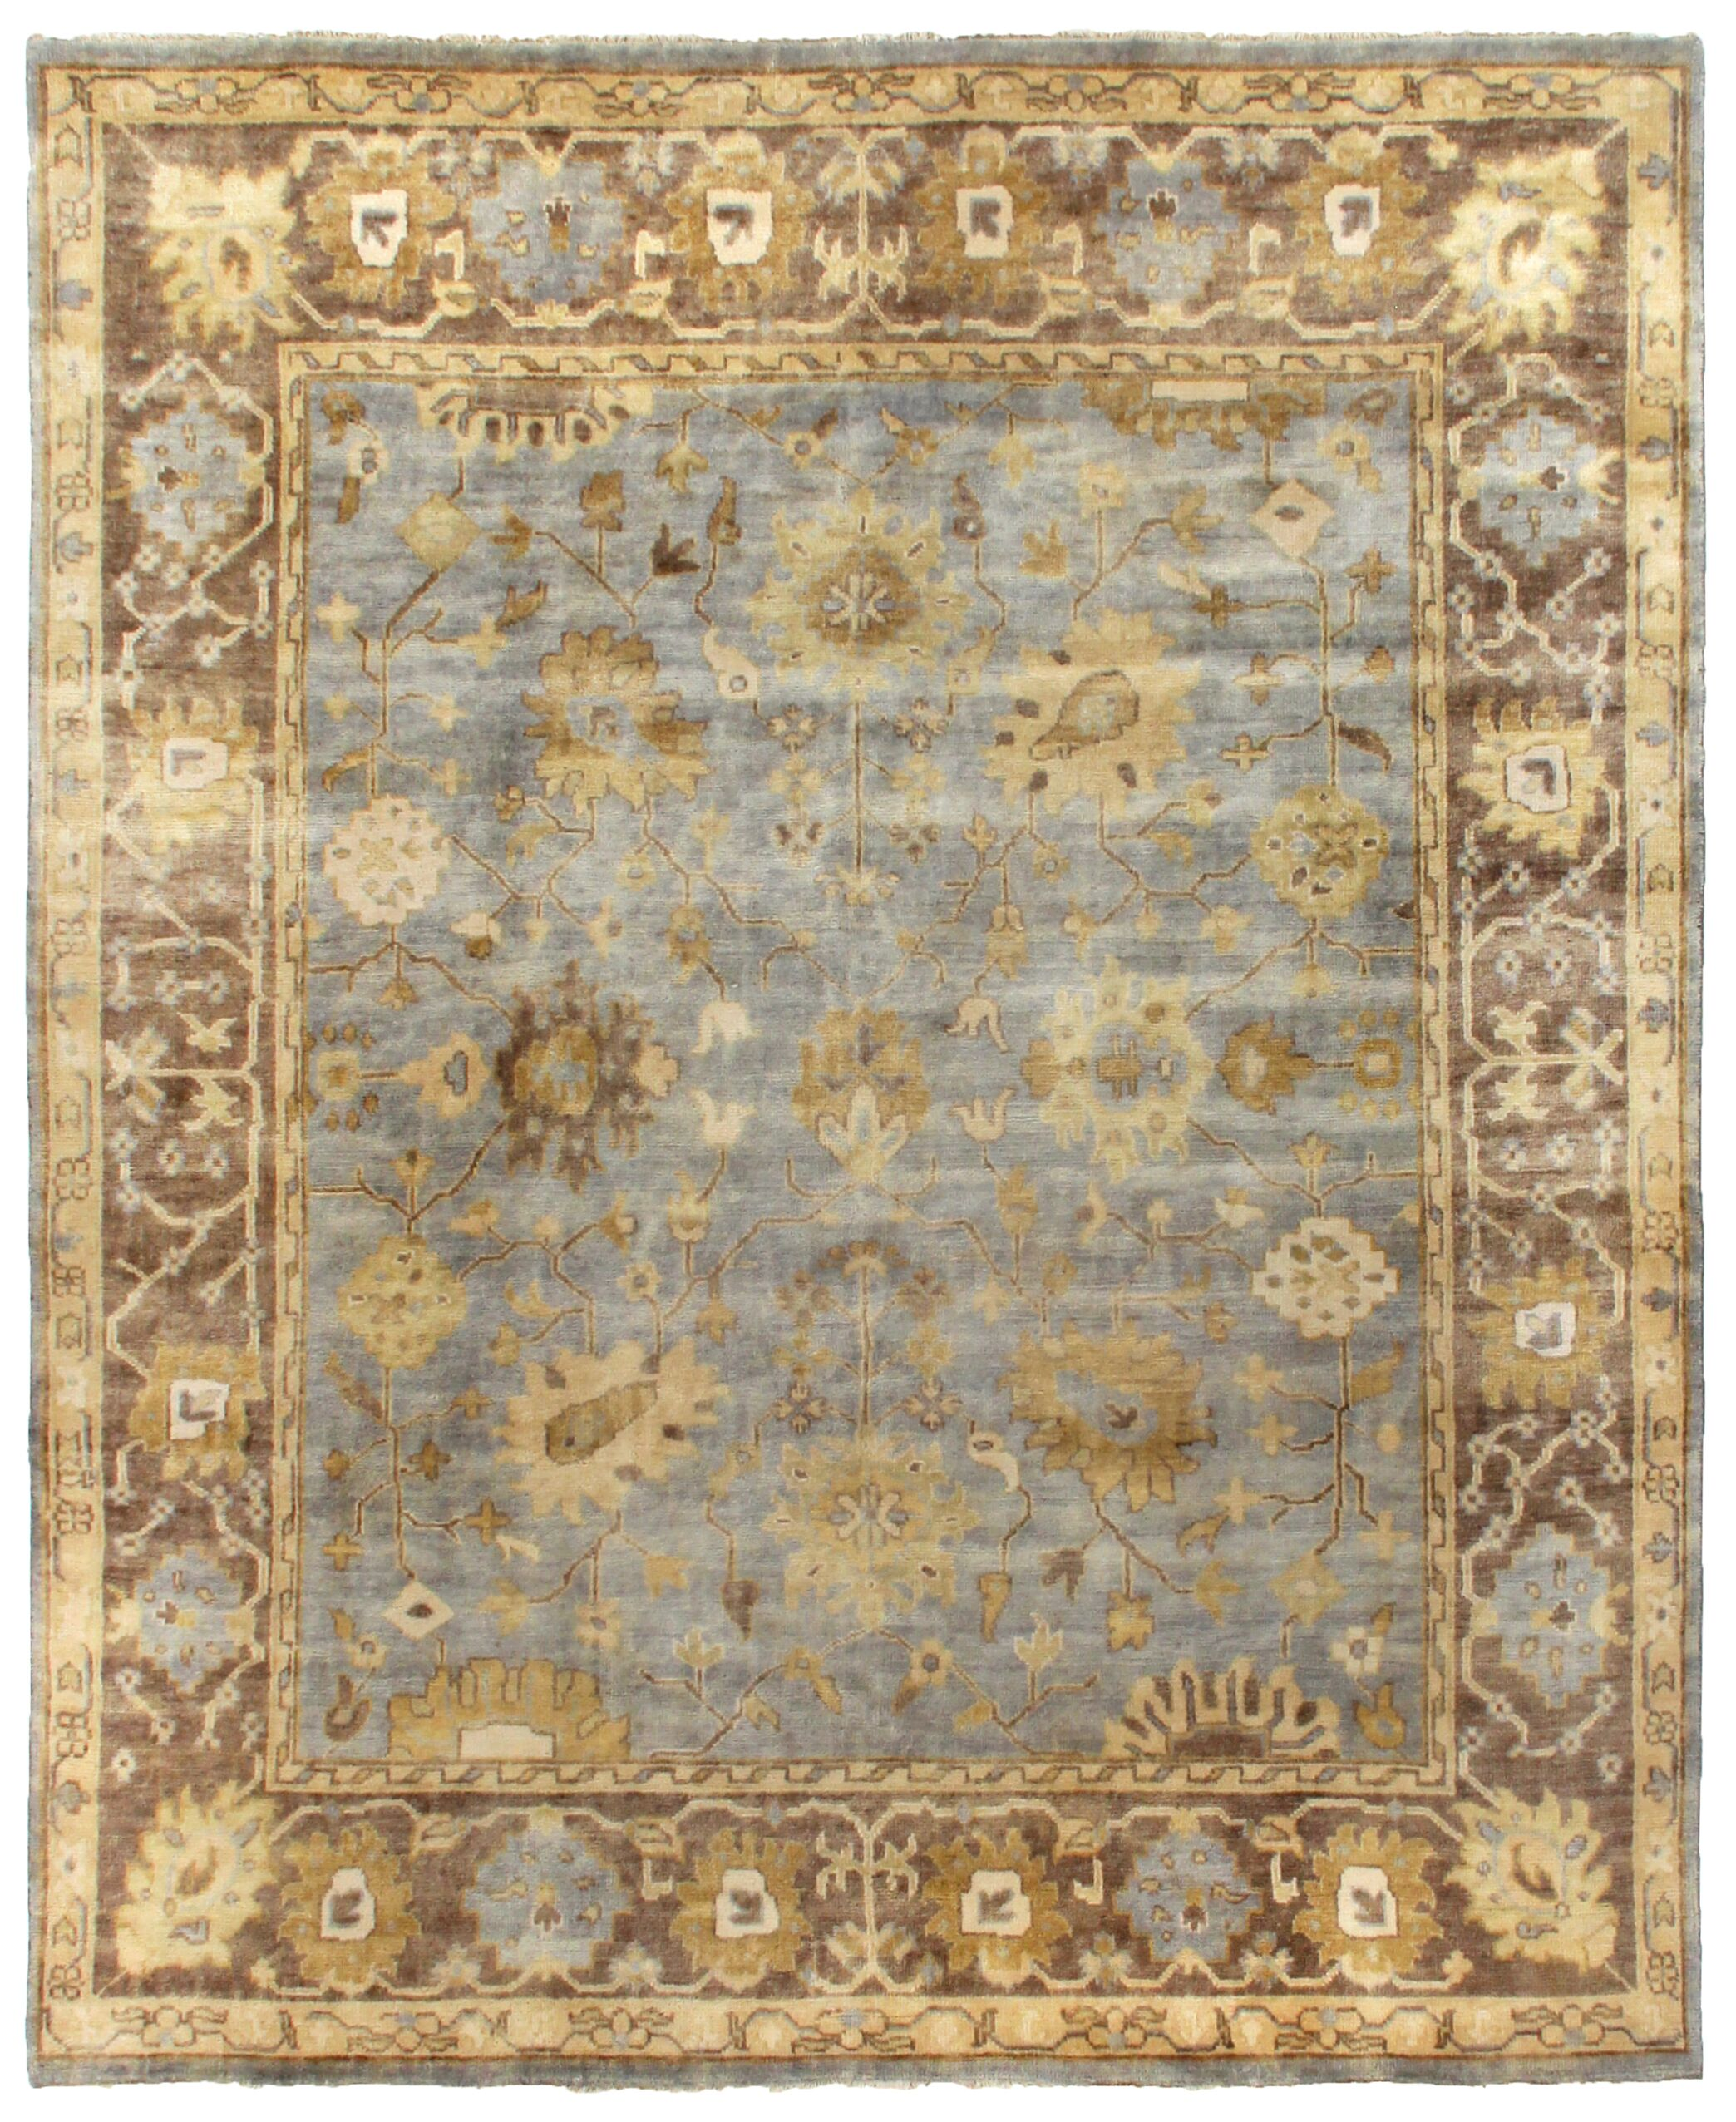 Oushak Hand-Knotted Wool Gray/Brown Area Rug Rug Size: Rectangle 8' x 10'